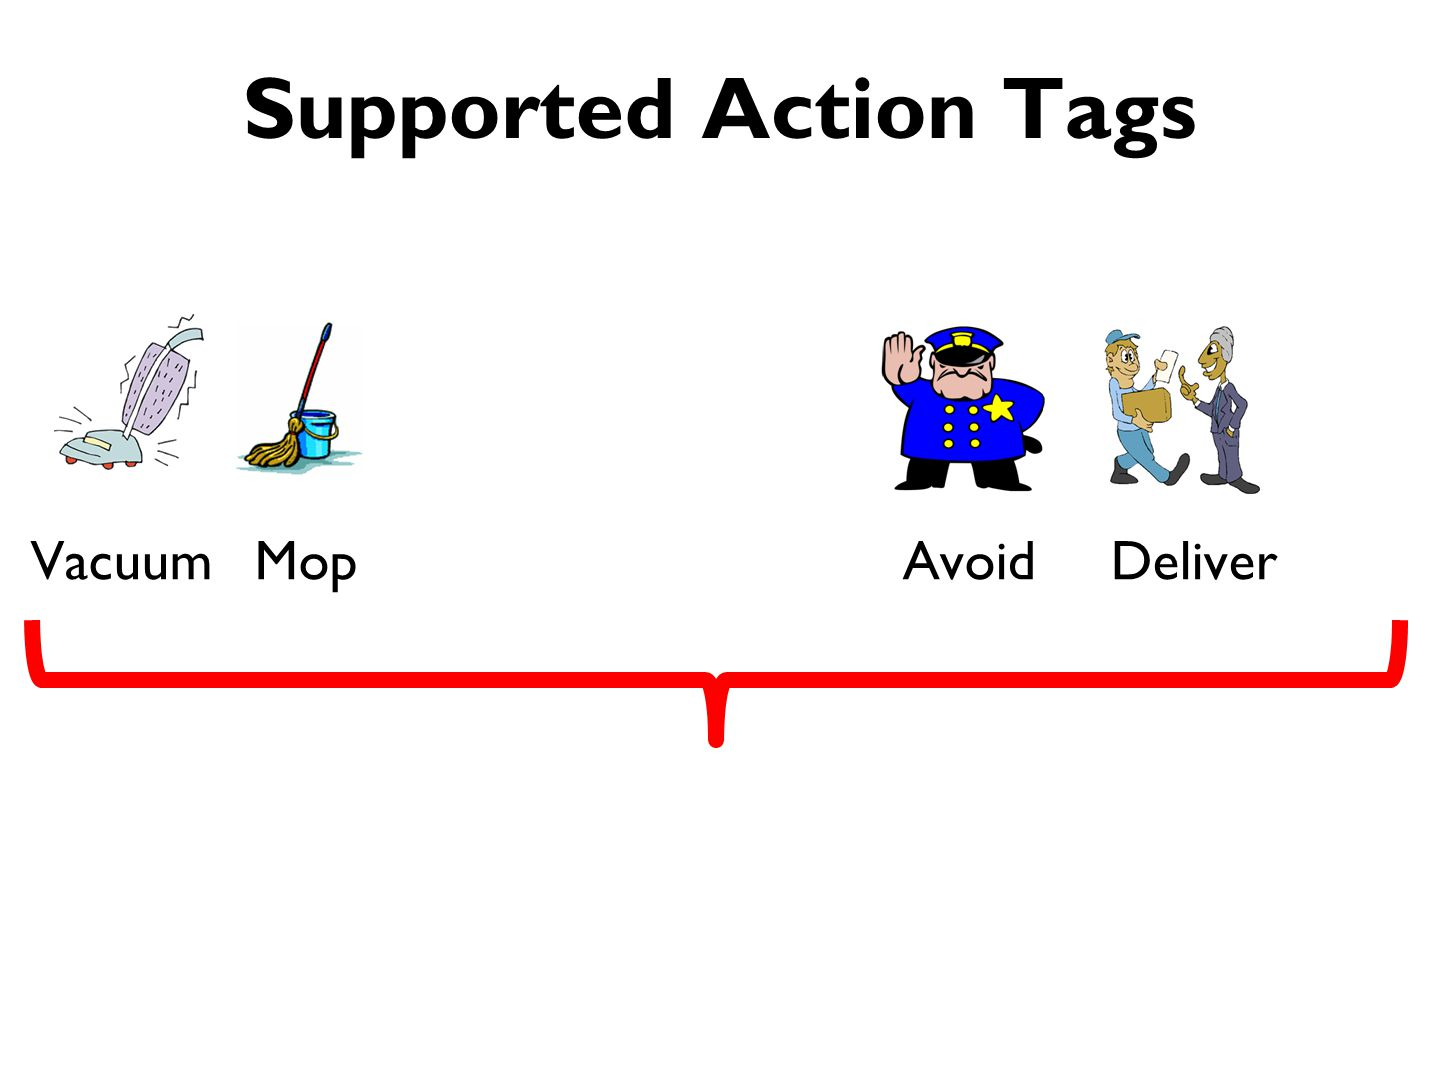 Supported Action Tags VacuumMopDeliverAvoid